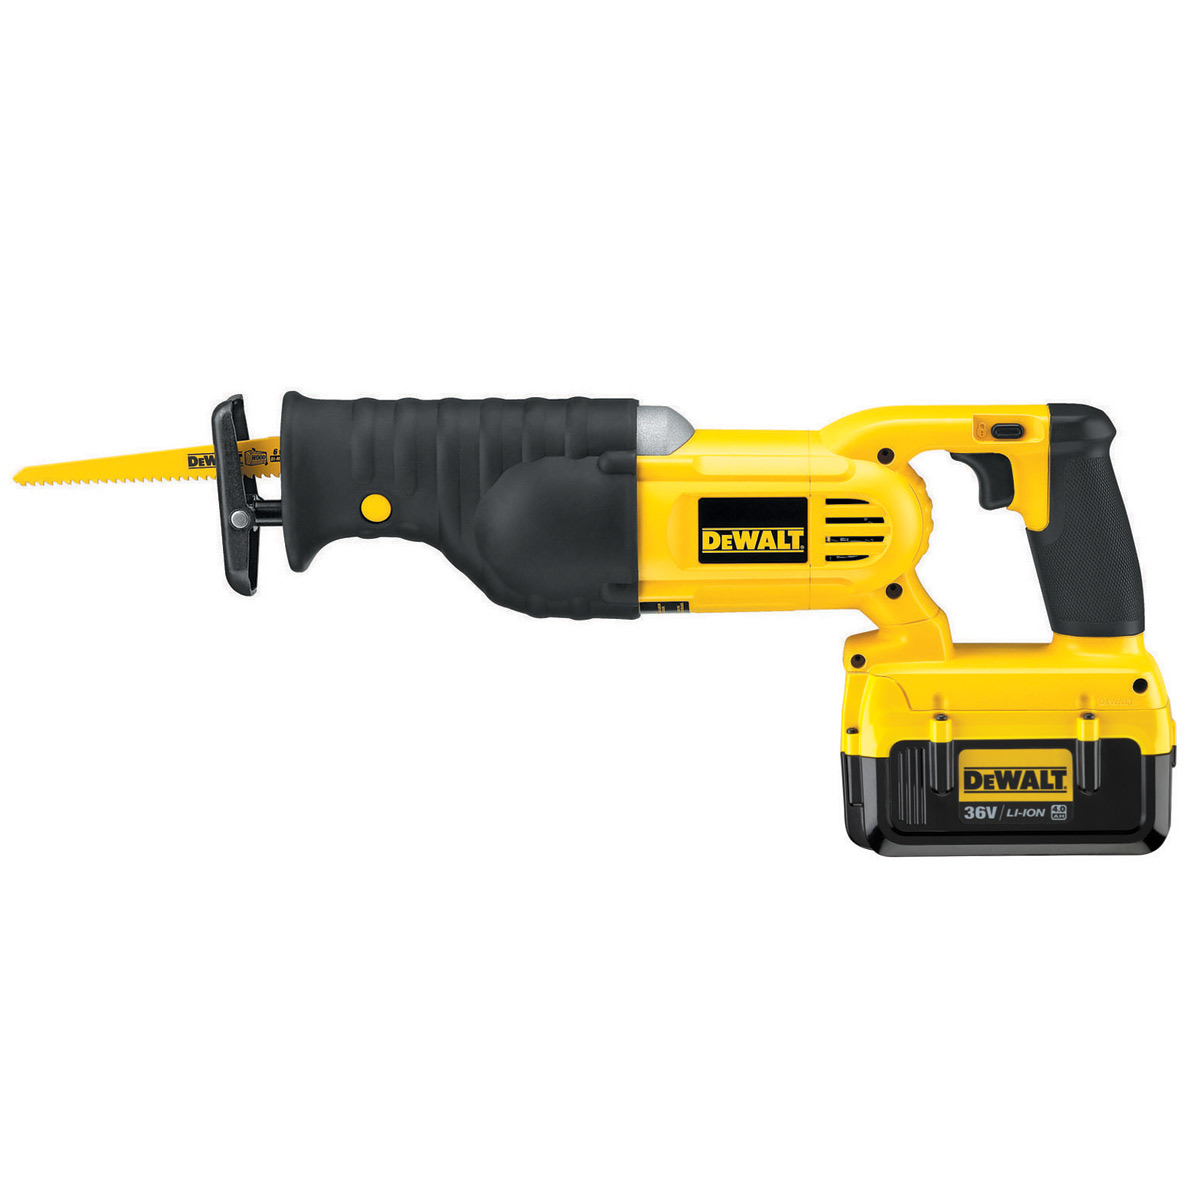 DEWALT DC305D2 36V RECIPROCATING SAW WITH 2X 2.0AH LI-ION BATTERIES